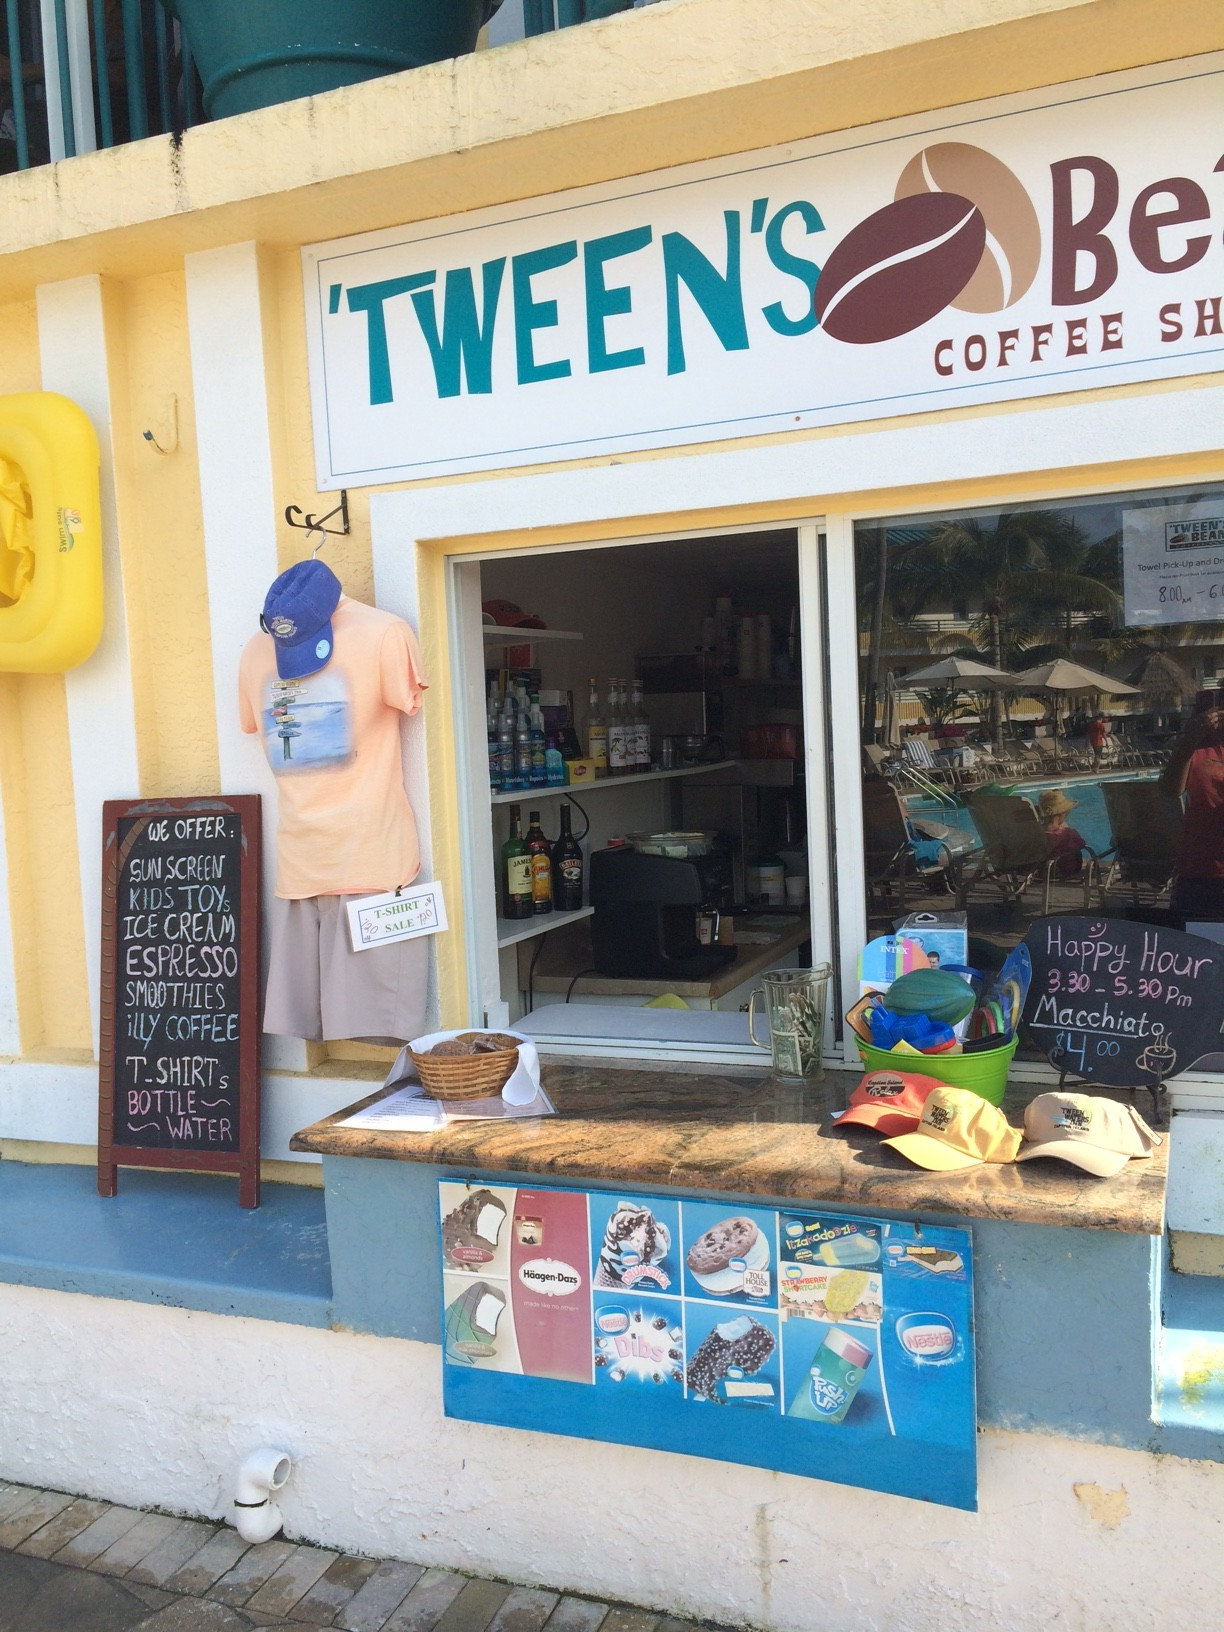 Coffees, Ice Cream, Smoothies & More at 'Tween's Beans Coffee Shop